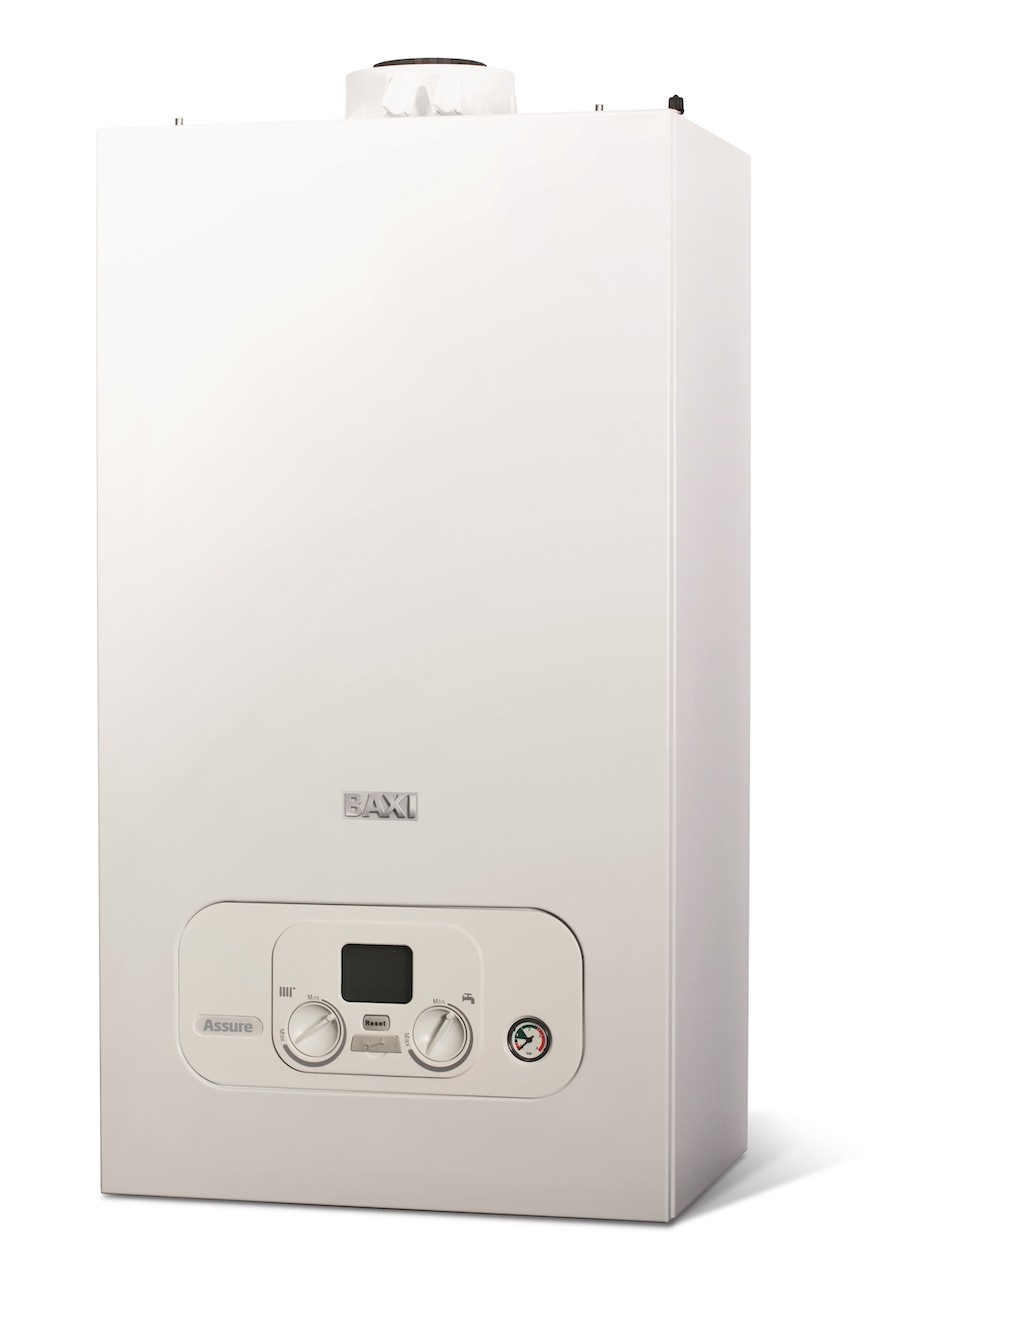 Baxi boiler ranges achieve certification for use with 20% hydrogen